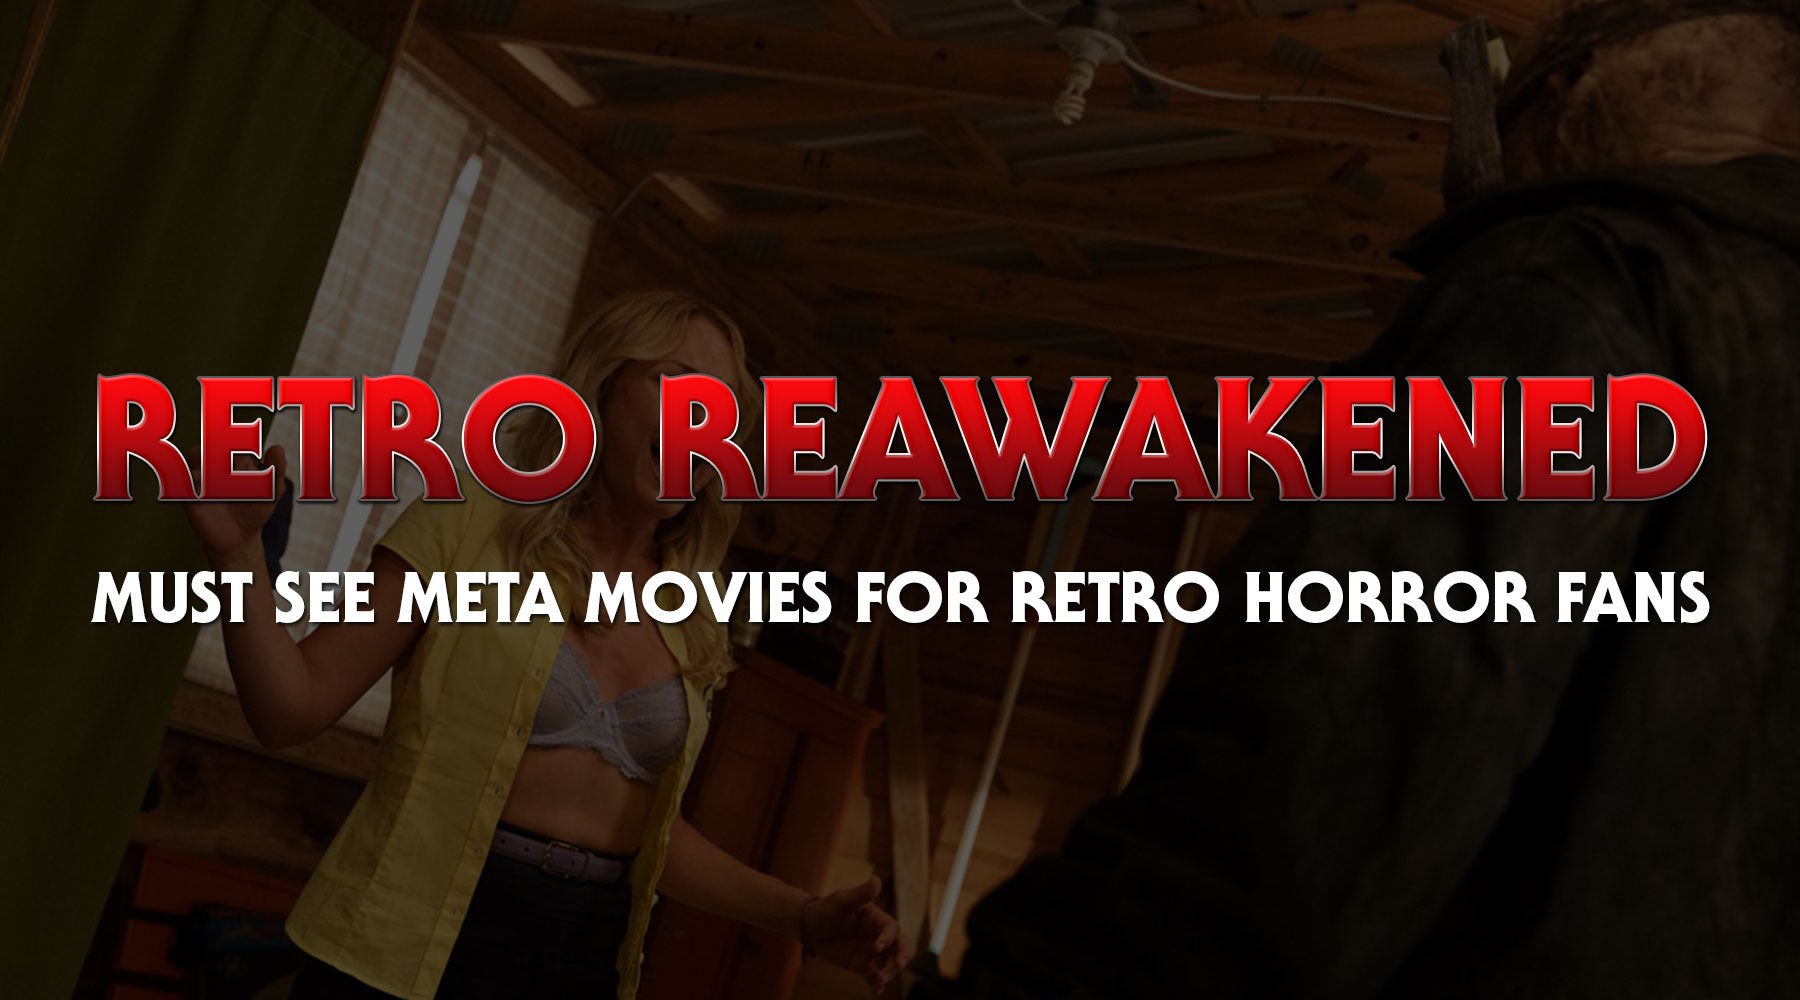 Retro Reawakened: Must See Meta Movies for Retro Horror Fans